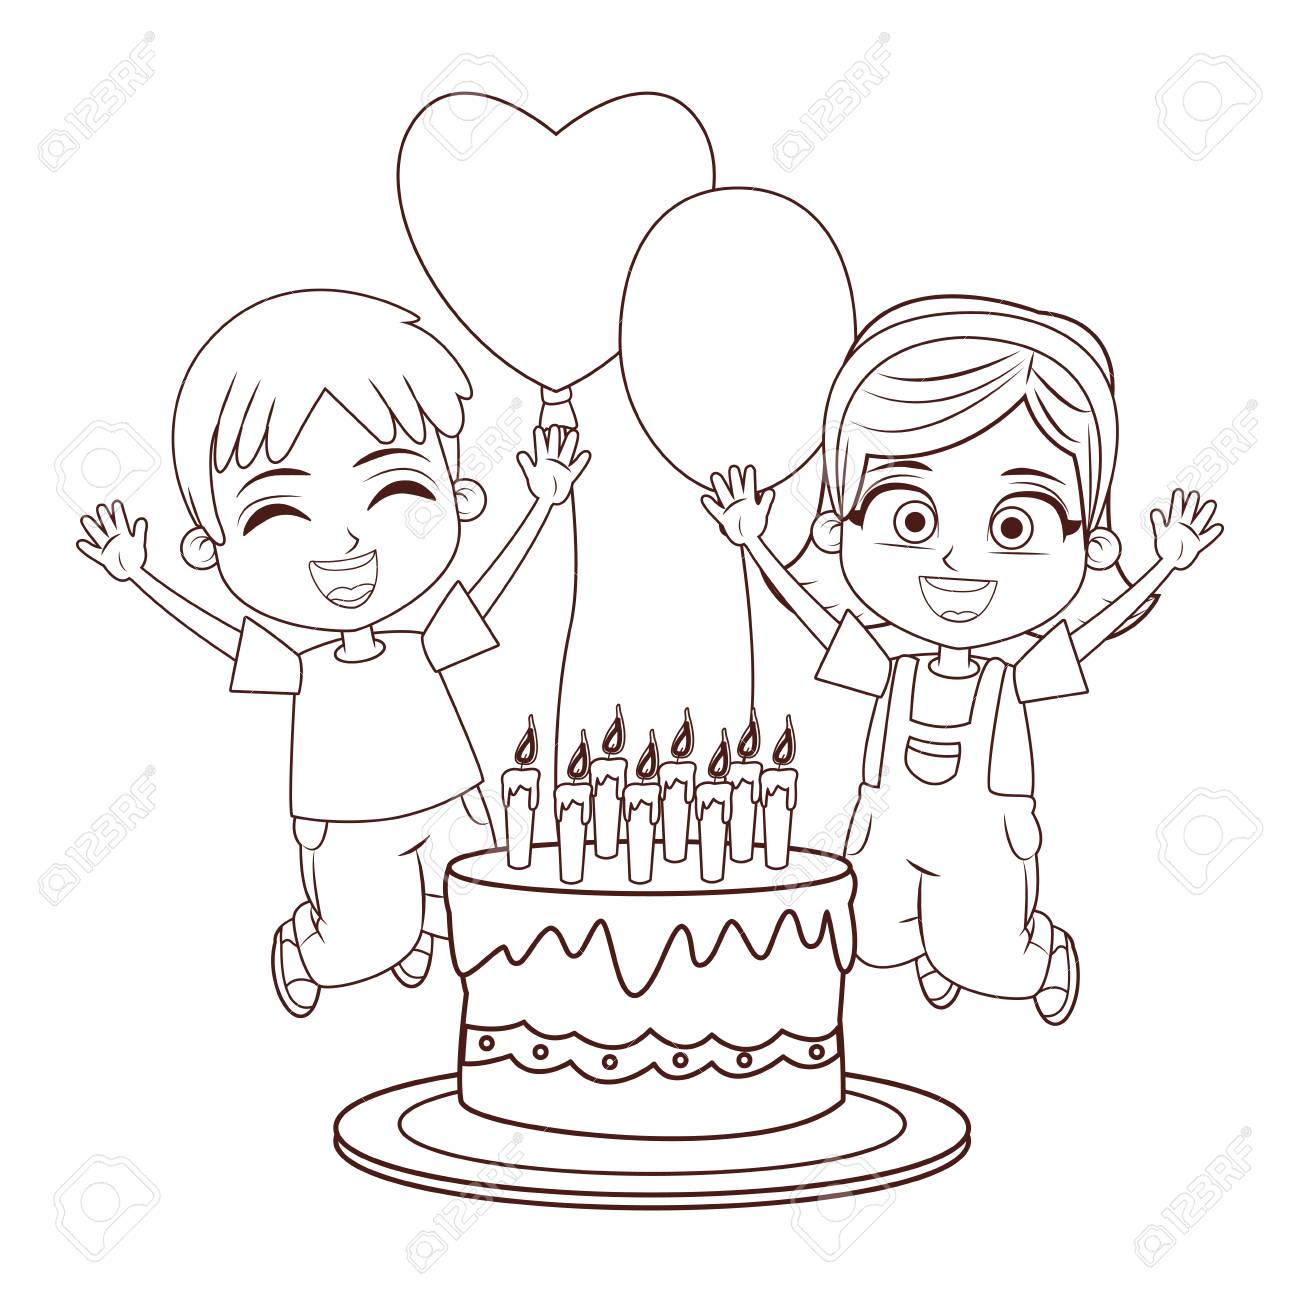 Kids Birthday Party Wit Cake And Balloons Cartoon In Black And